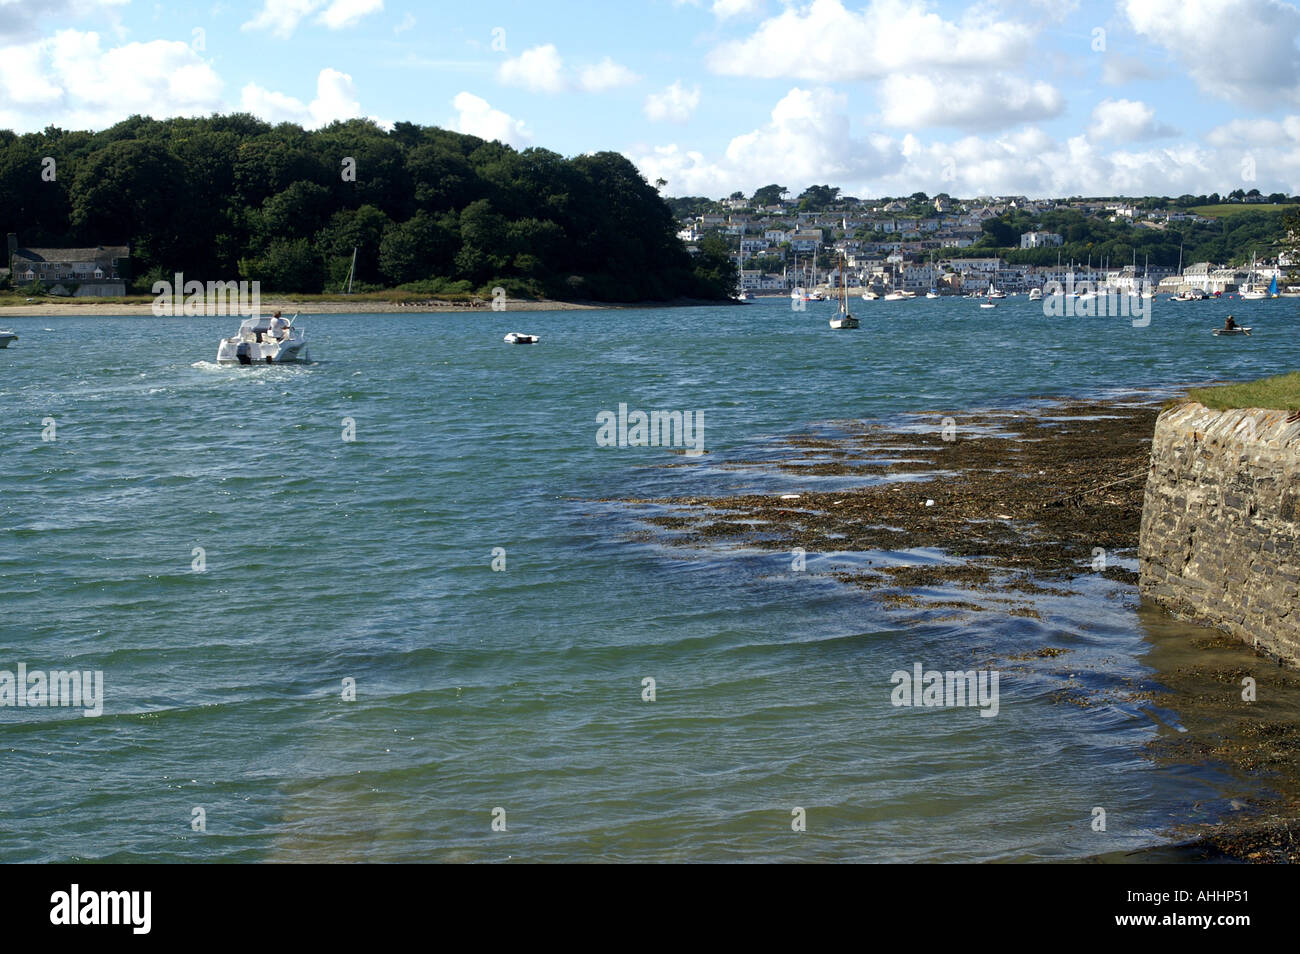 platz haus keller strand st anthony in roseland cornwall stockfoto bild 4727376 alamy. Black Bedroom Furniture Sets. Home Design Ideas